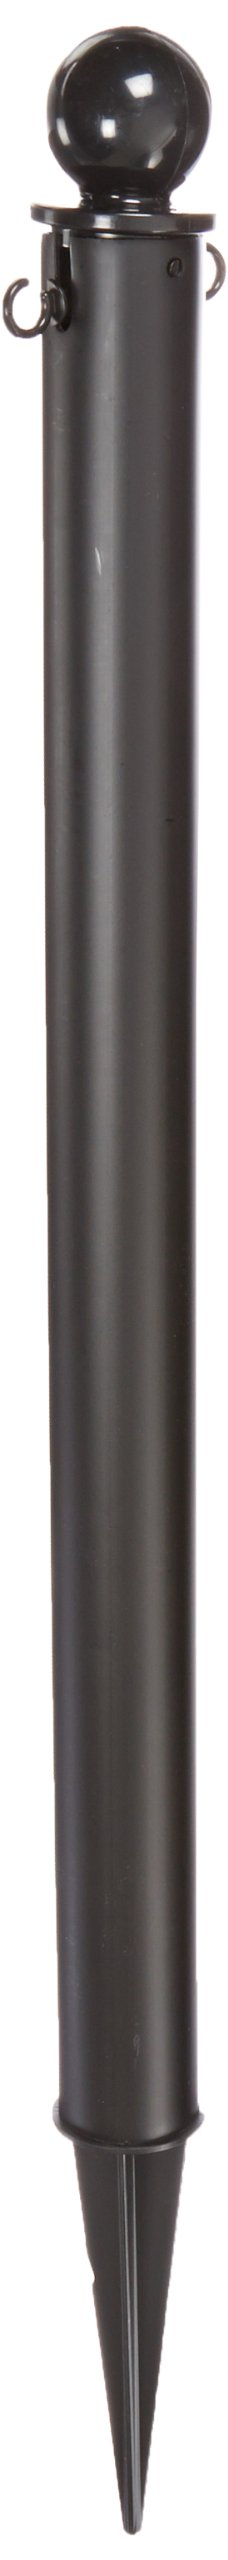 Mr. Chain Deluxe Ground Pole, Black, 2.5-Inch Diameter x 35-Inch Height, Pack of 6 (95403-6) by Mr. Chain